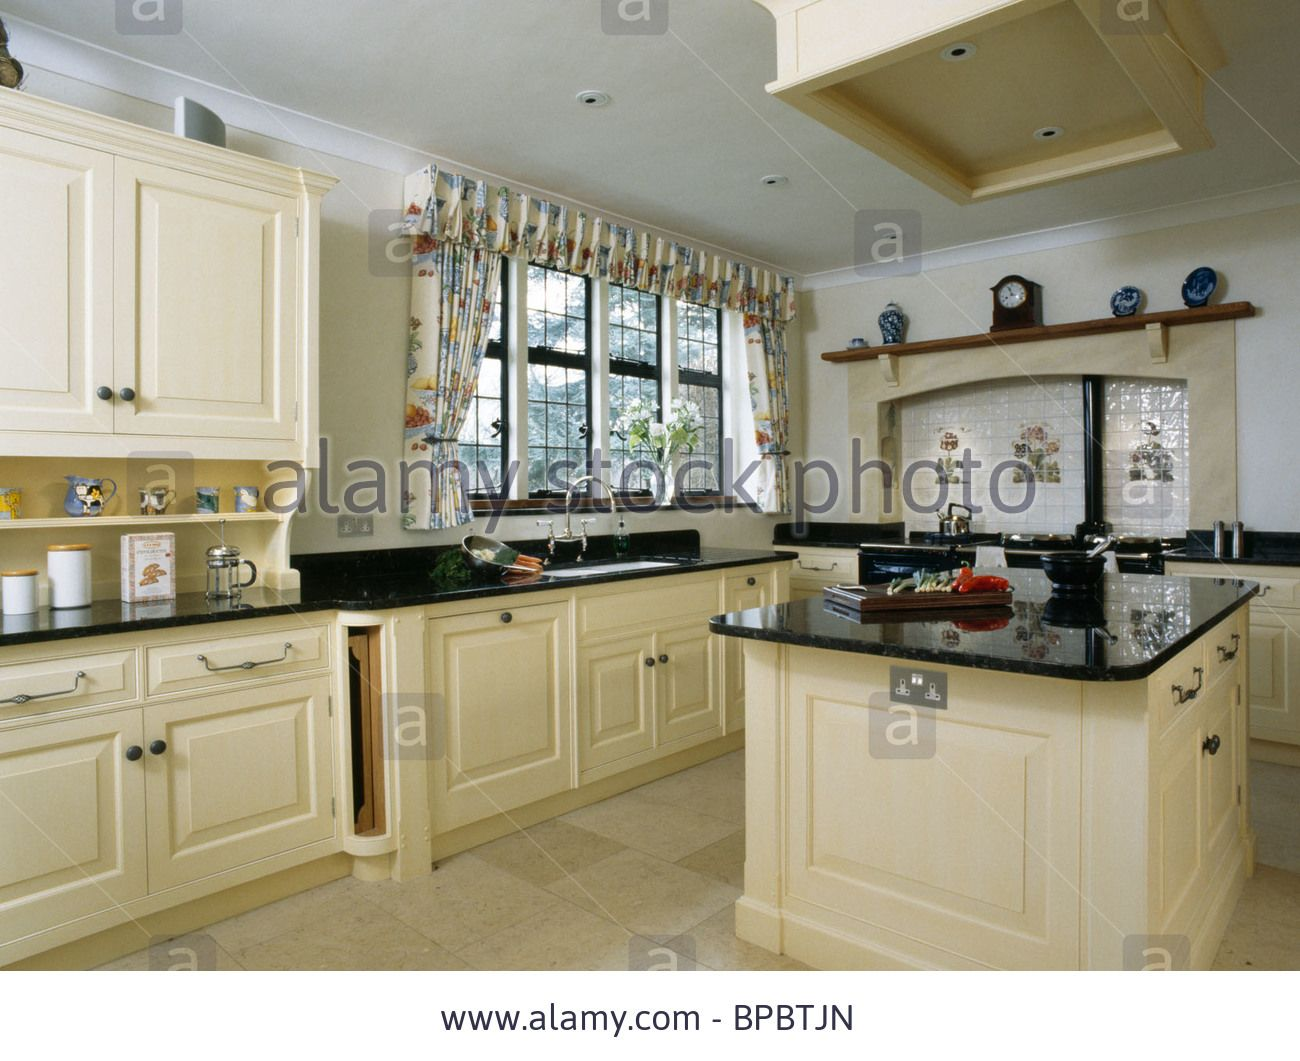 Stock Photo Cream Island Unit With Black Granite Worktop In Large Country Kitchen Country Kitchen Kitchen Kitchen Inspirations